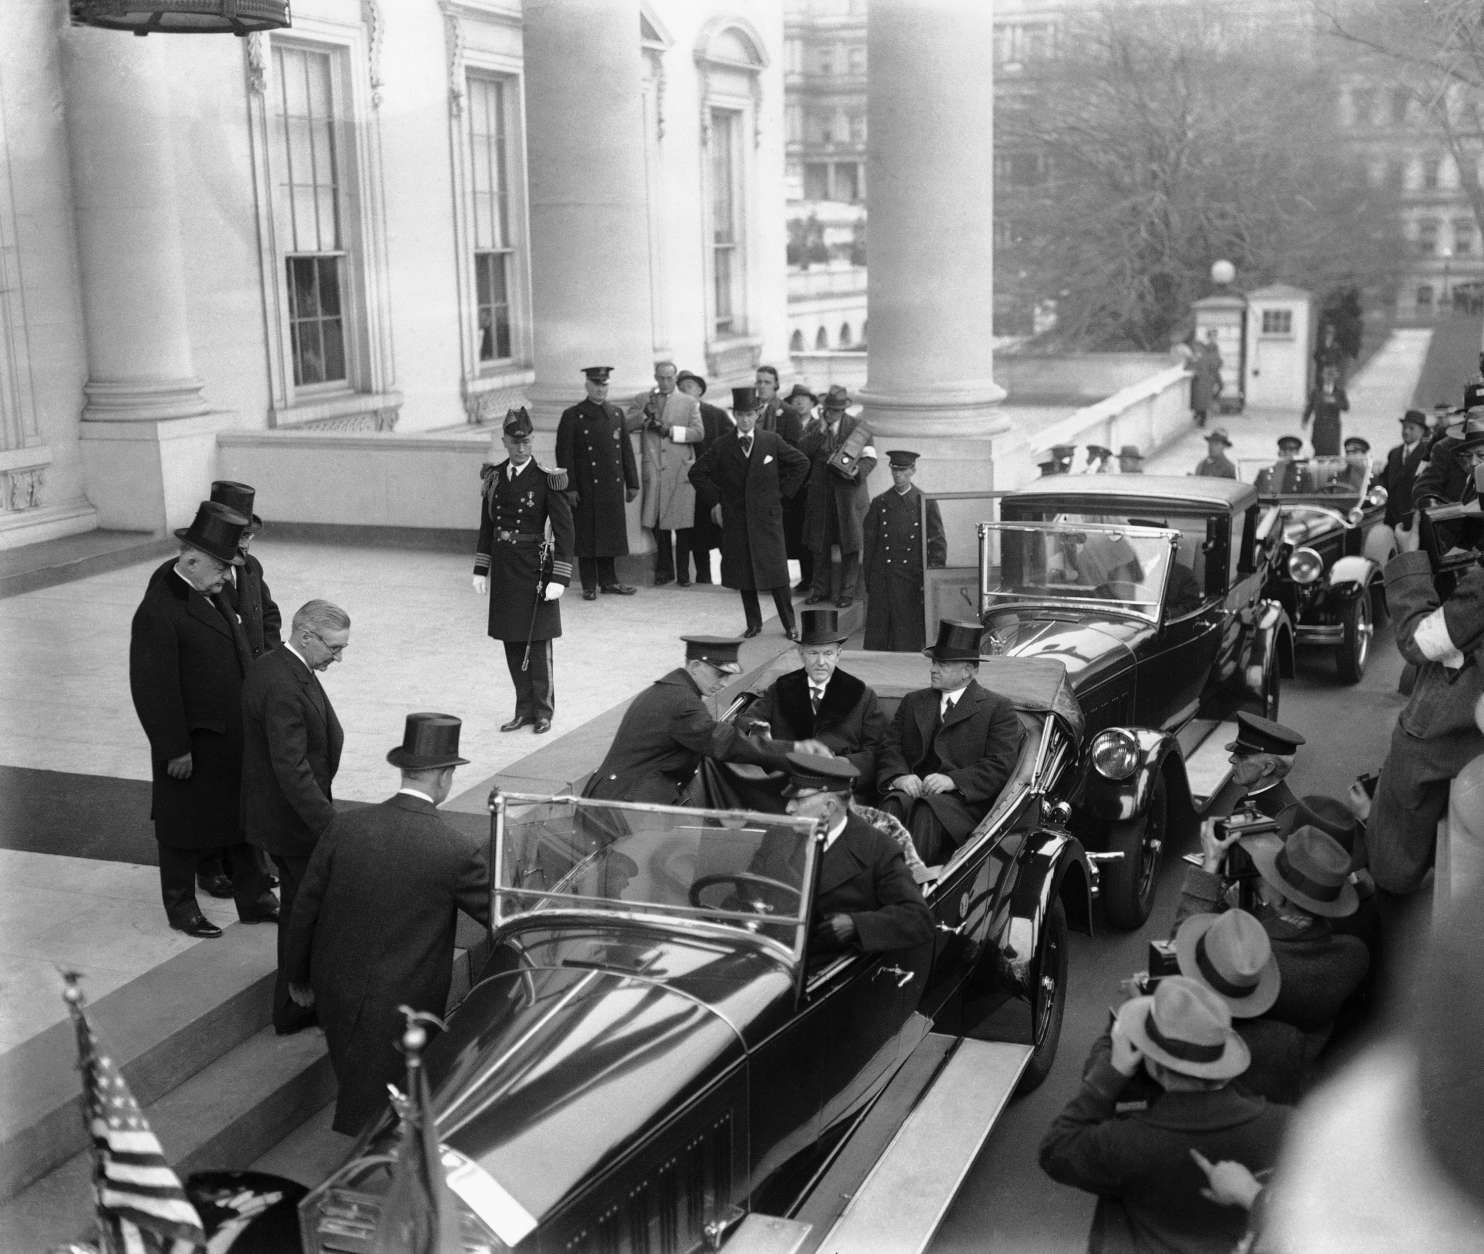 President Calvin Coolidge and President-elect Herbert Hoover, seated in car, are shown as they left the White House for Hoover's inauguration, March 4, 1929.  (AP Photo)